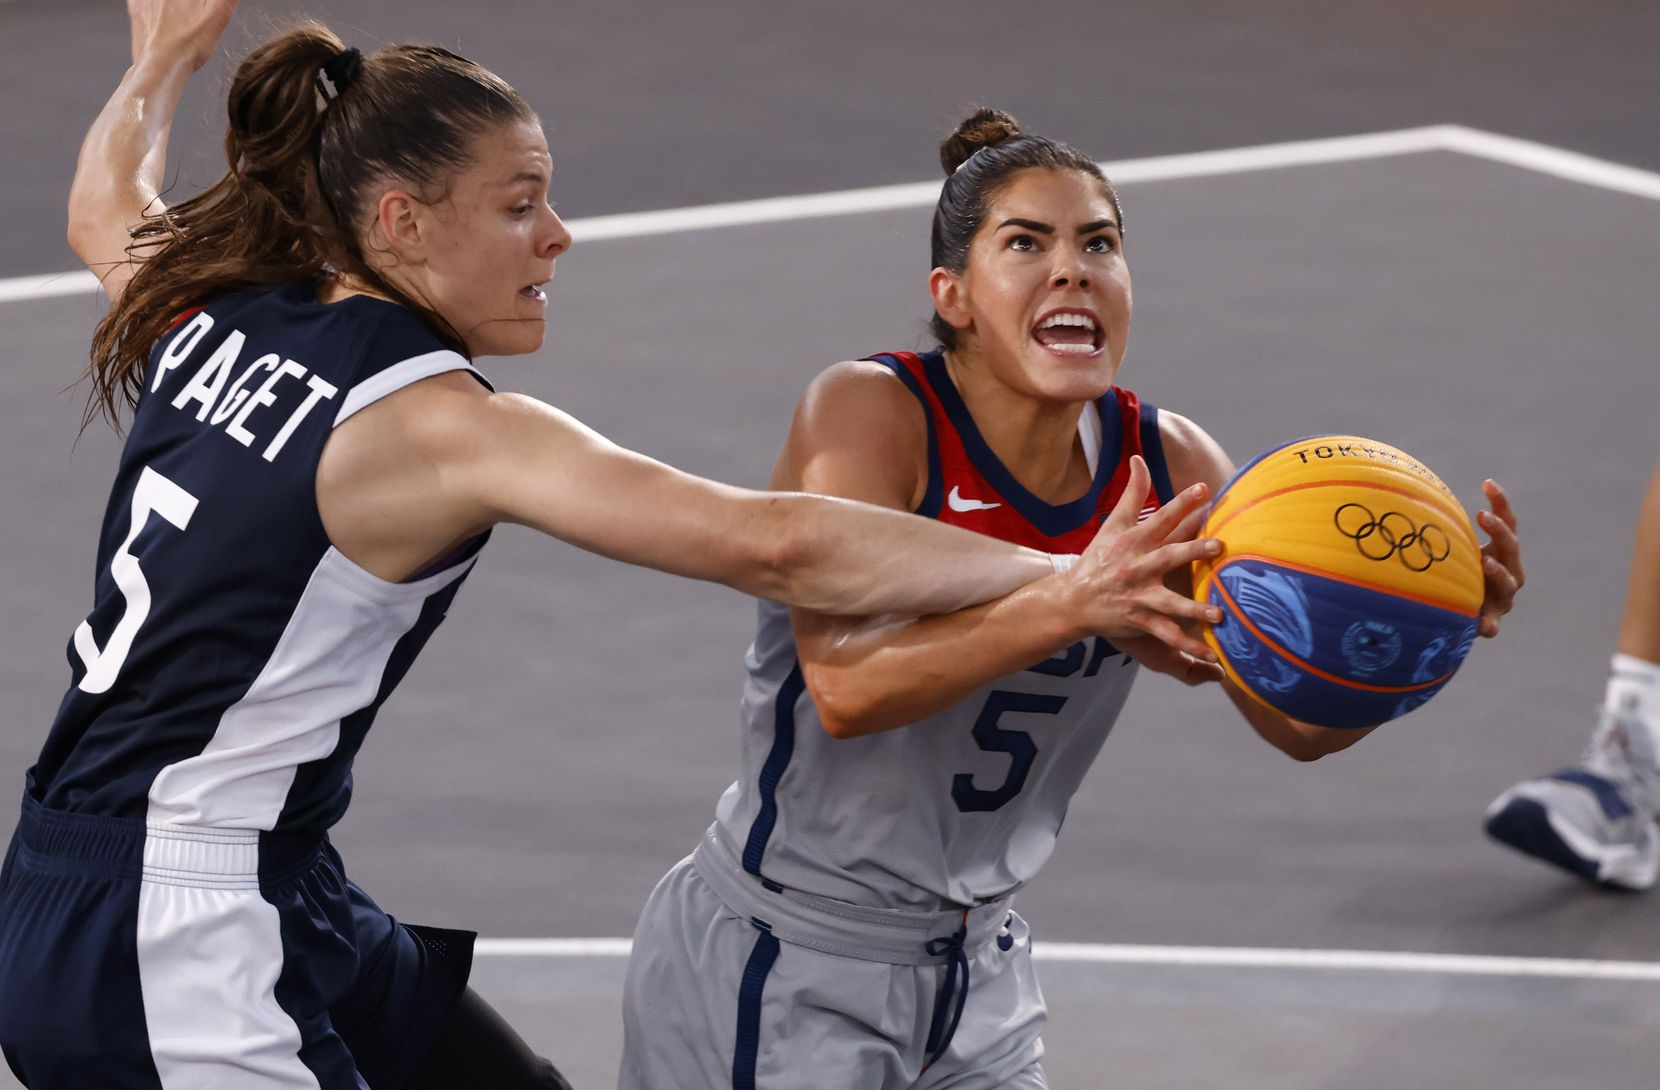 USA Kelsey Plum (5) is fouled as she attempts a shot in front of France's Marie-Eve Paget (5) in a 3x3 women's basketball game during the postponed 2020 Tokyo Olympics at Aomi Urban Sports Park on Saturday, July 24, 2021, in Tokyo, Japan. USA defeated France 17-10 in the game. (Vernon Bryant/The Dallas Morning News)